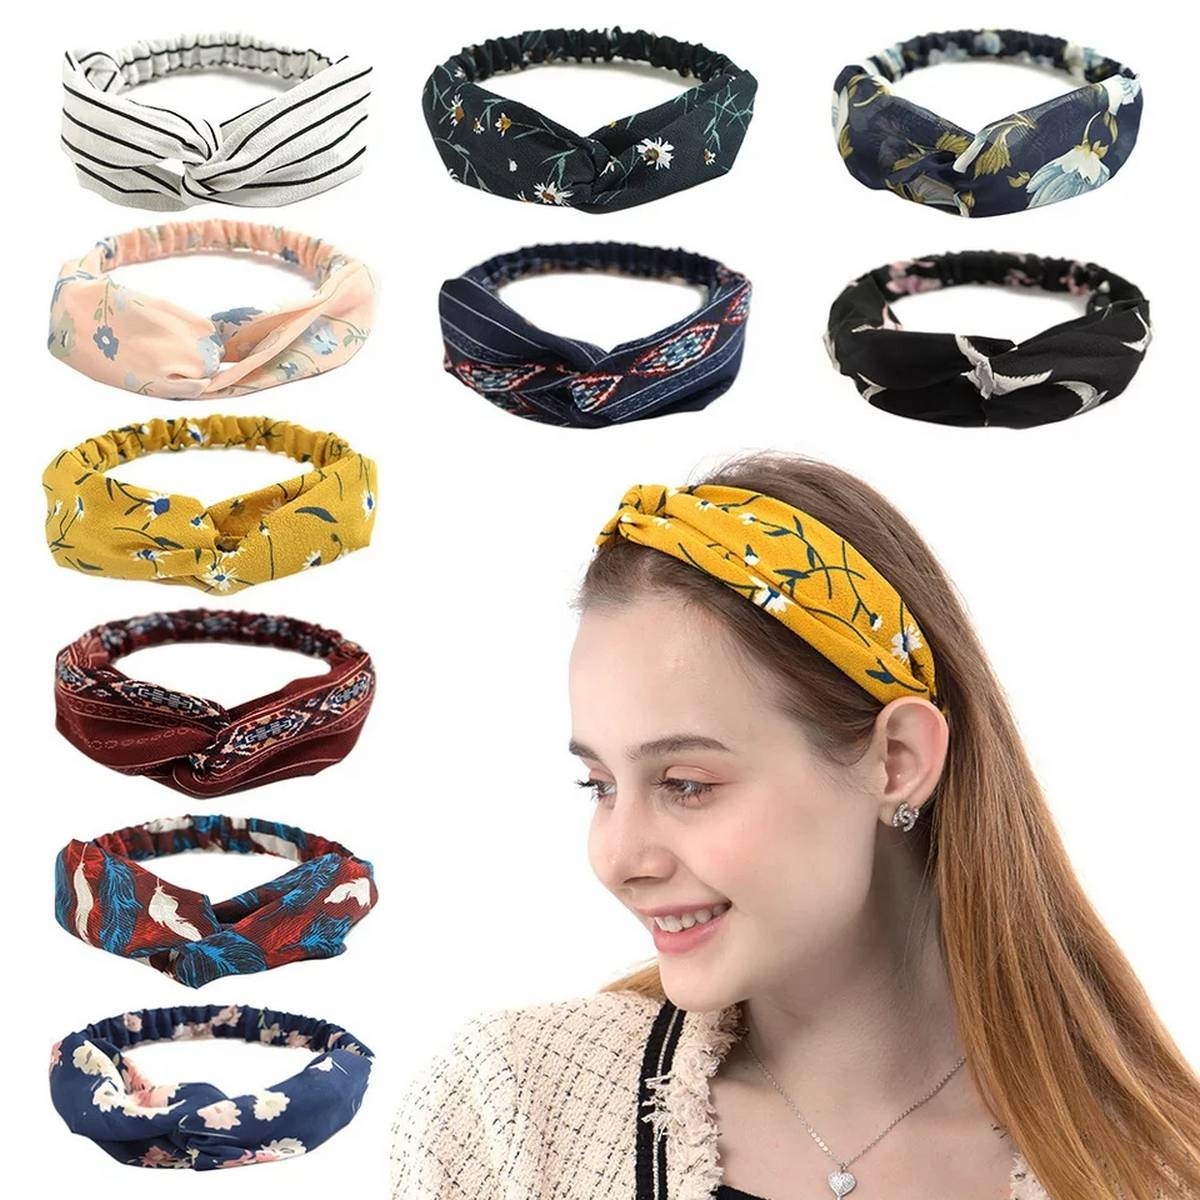 Pack of 2 2021 NEW Hair Accessories for Women Girls Hair Bands Print Headbands Vintage Cross Turban Scarf Bandage